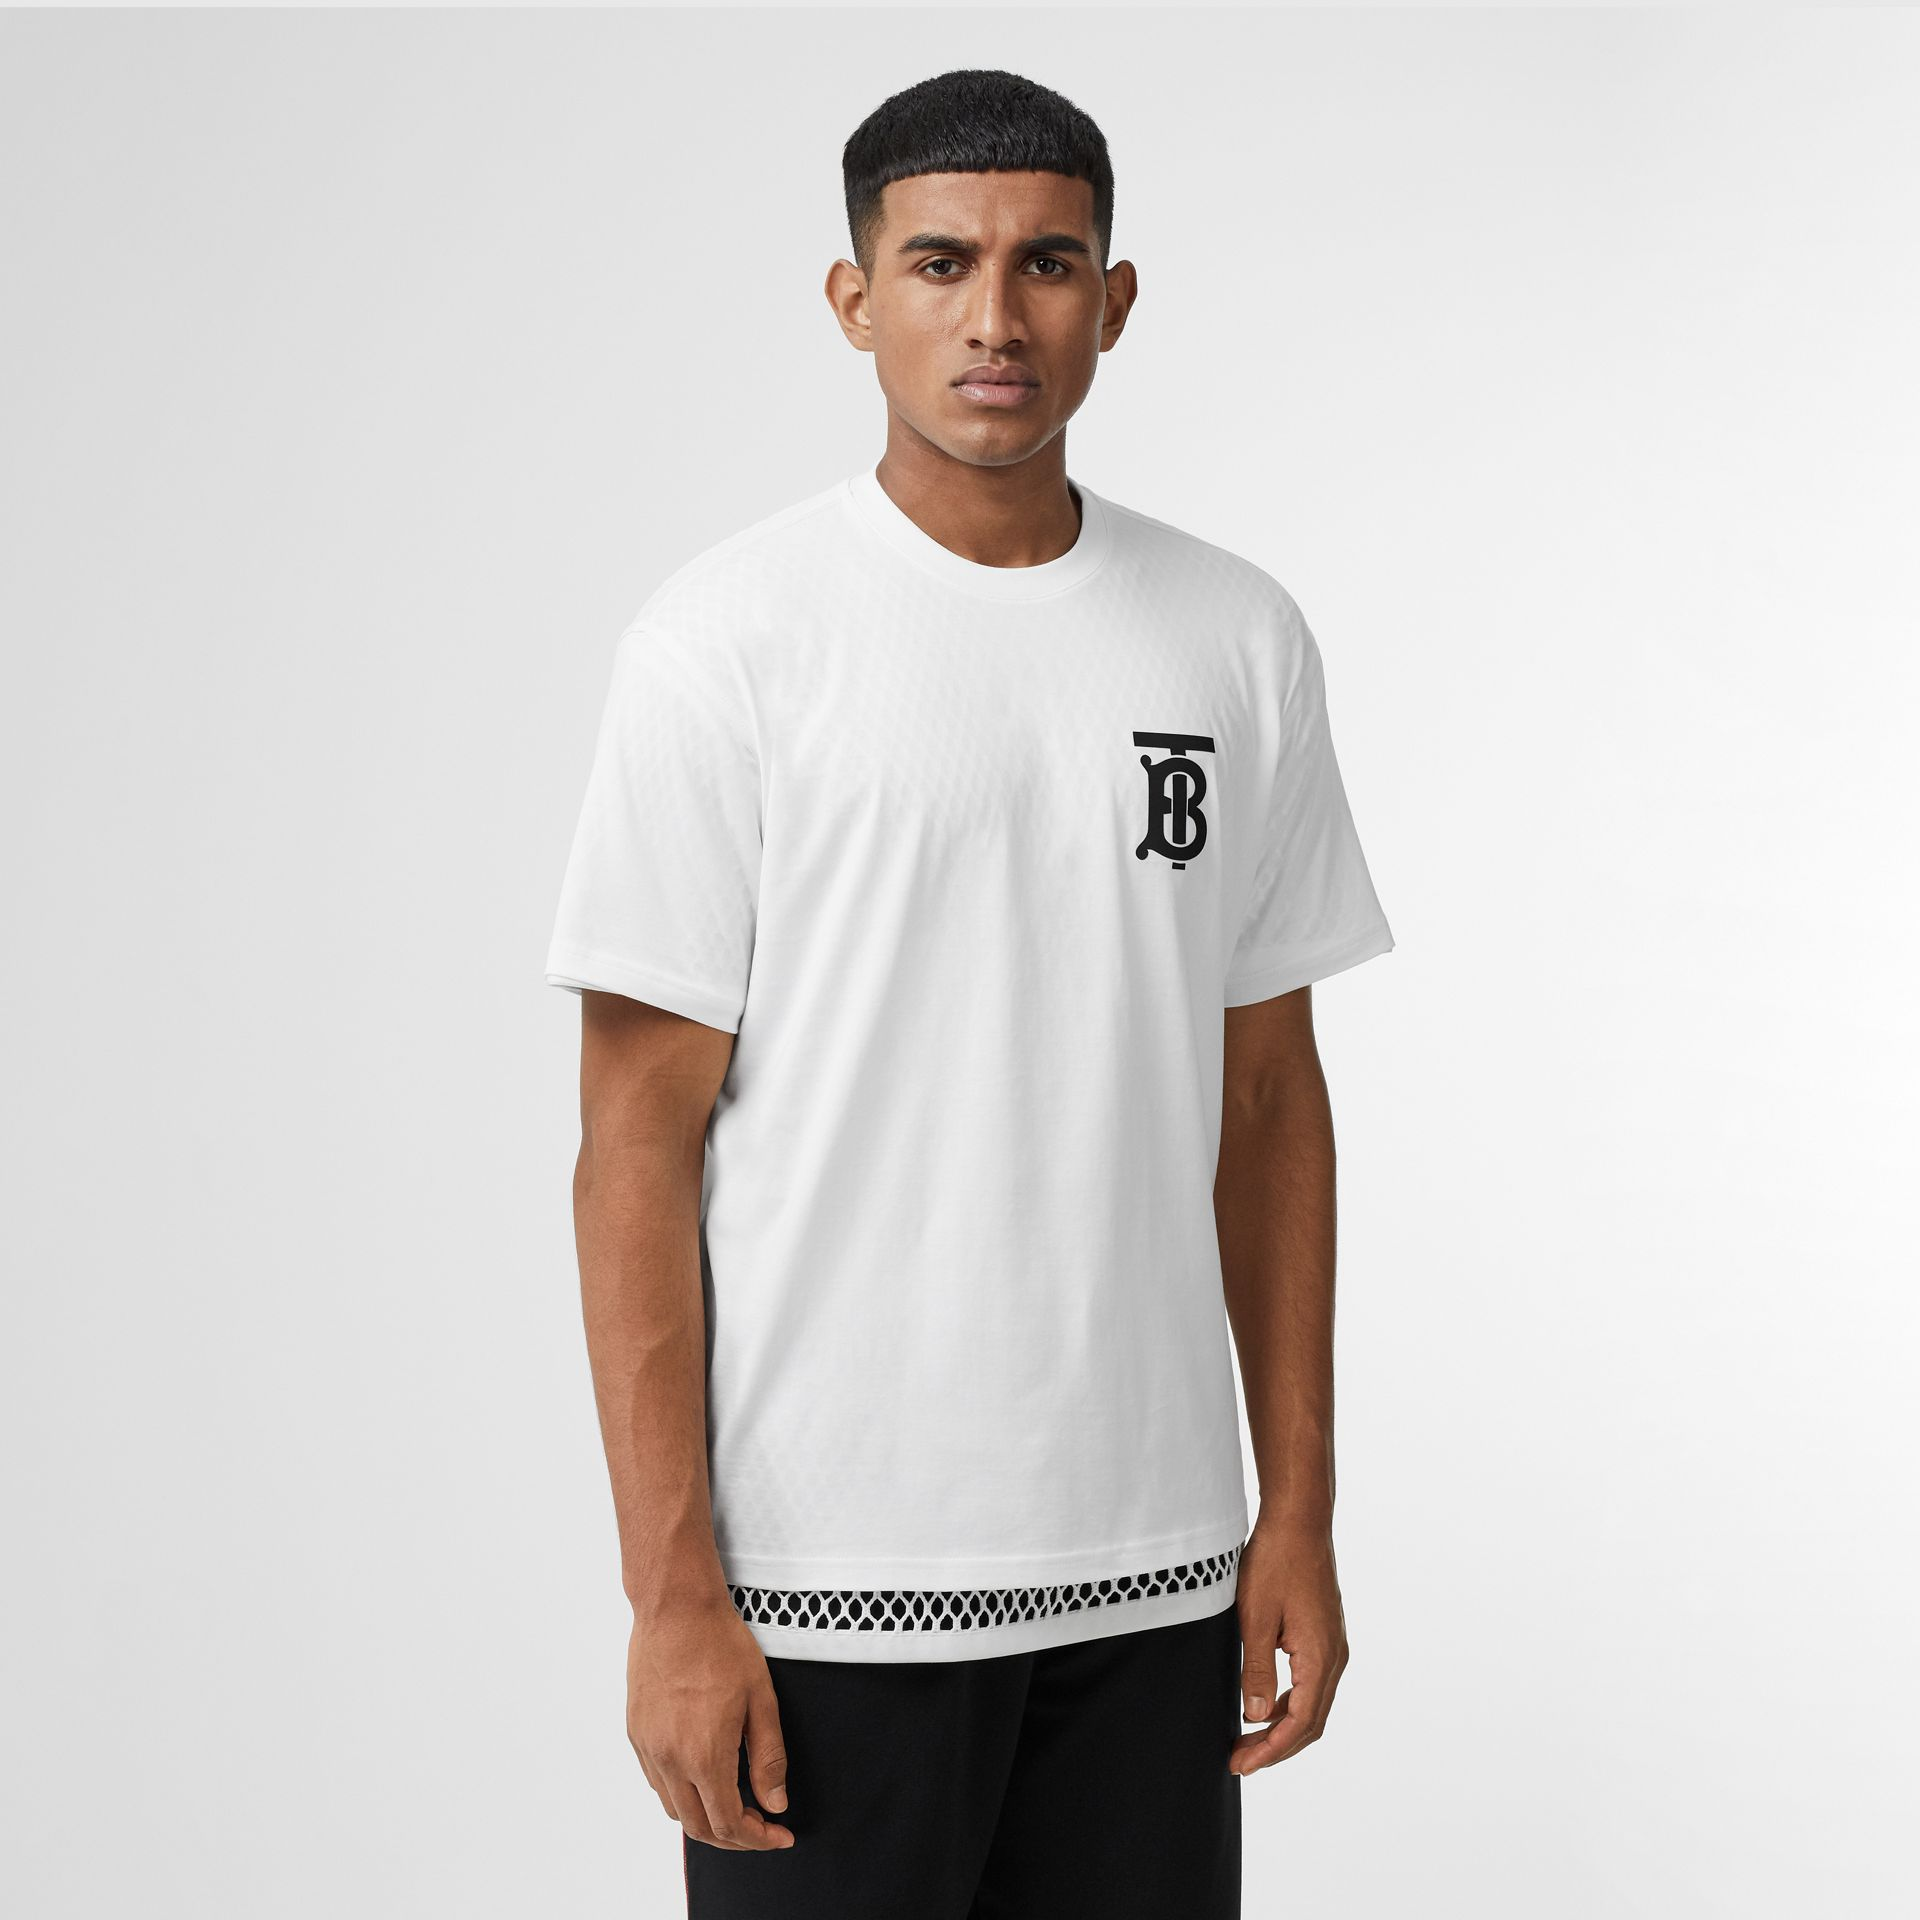 Monogram Motif Cotton Oversized T-shirt in White - Men | Burberry United States - gallery image 4